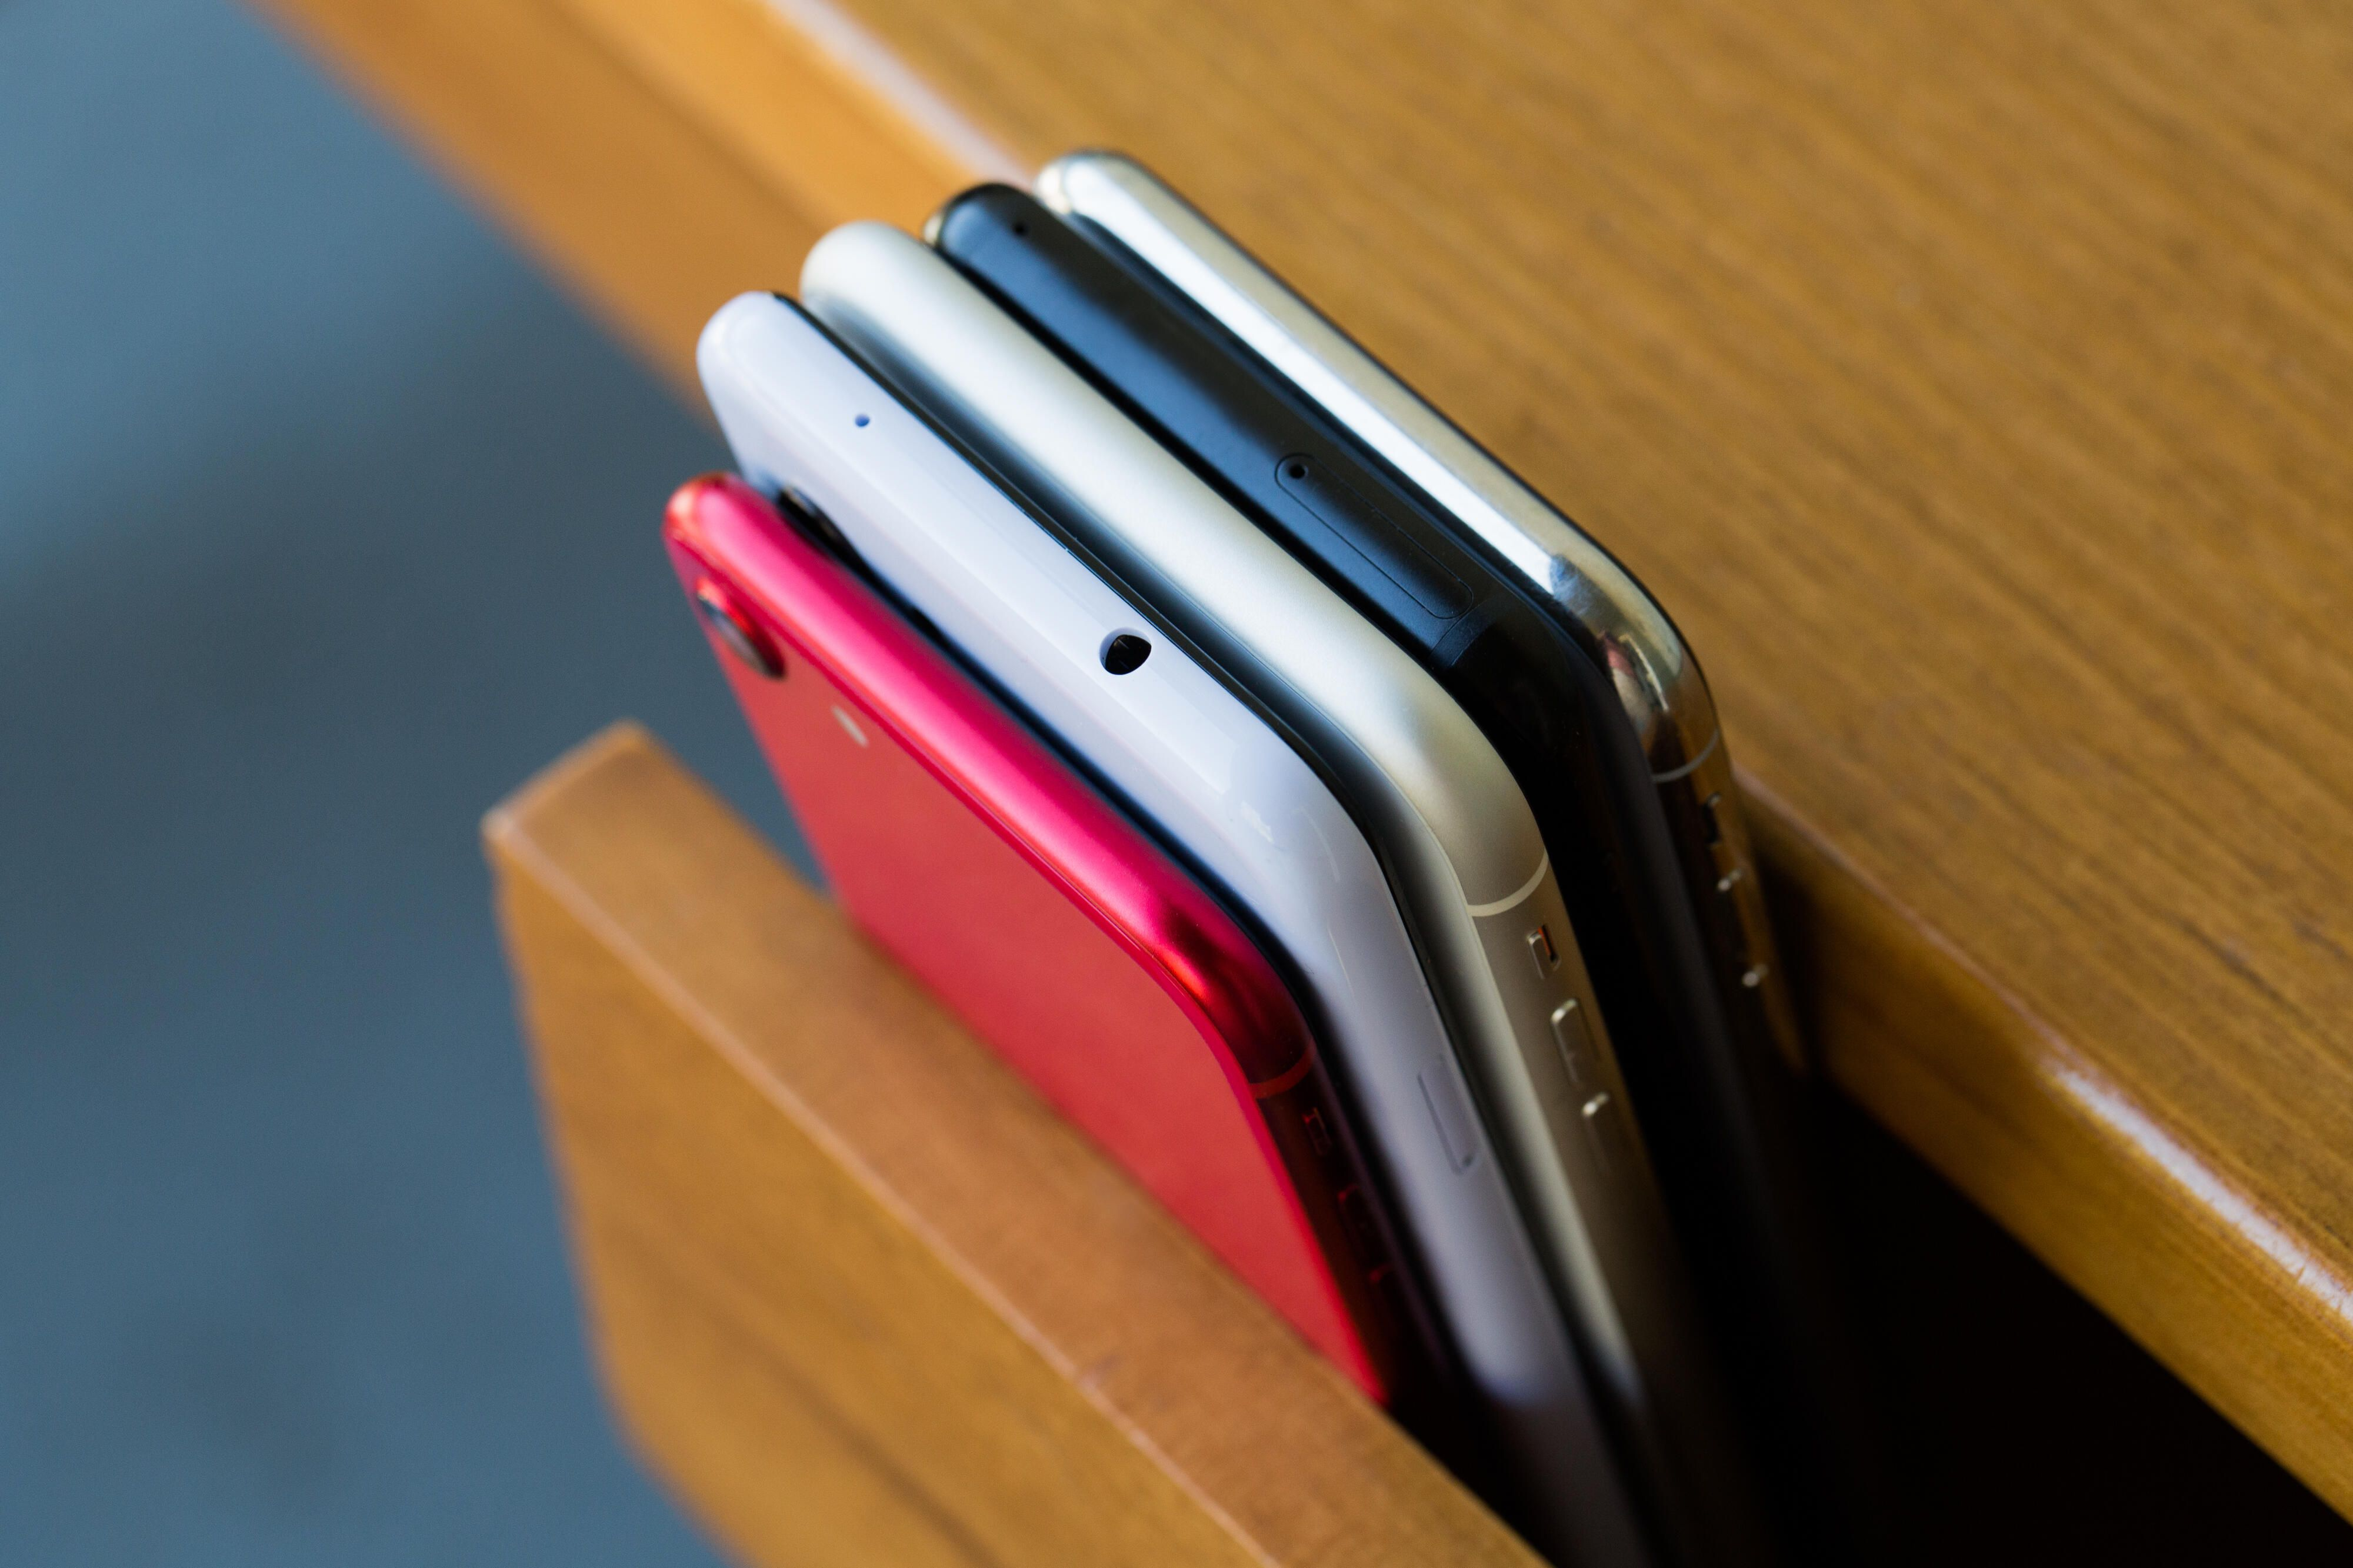 phone-stack-apple-iphone-android-google-pixel-2